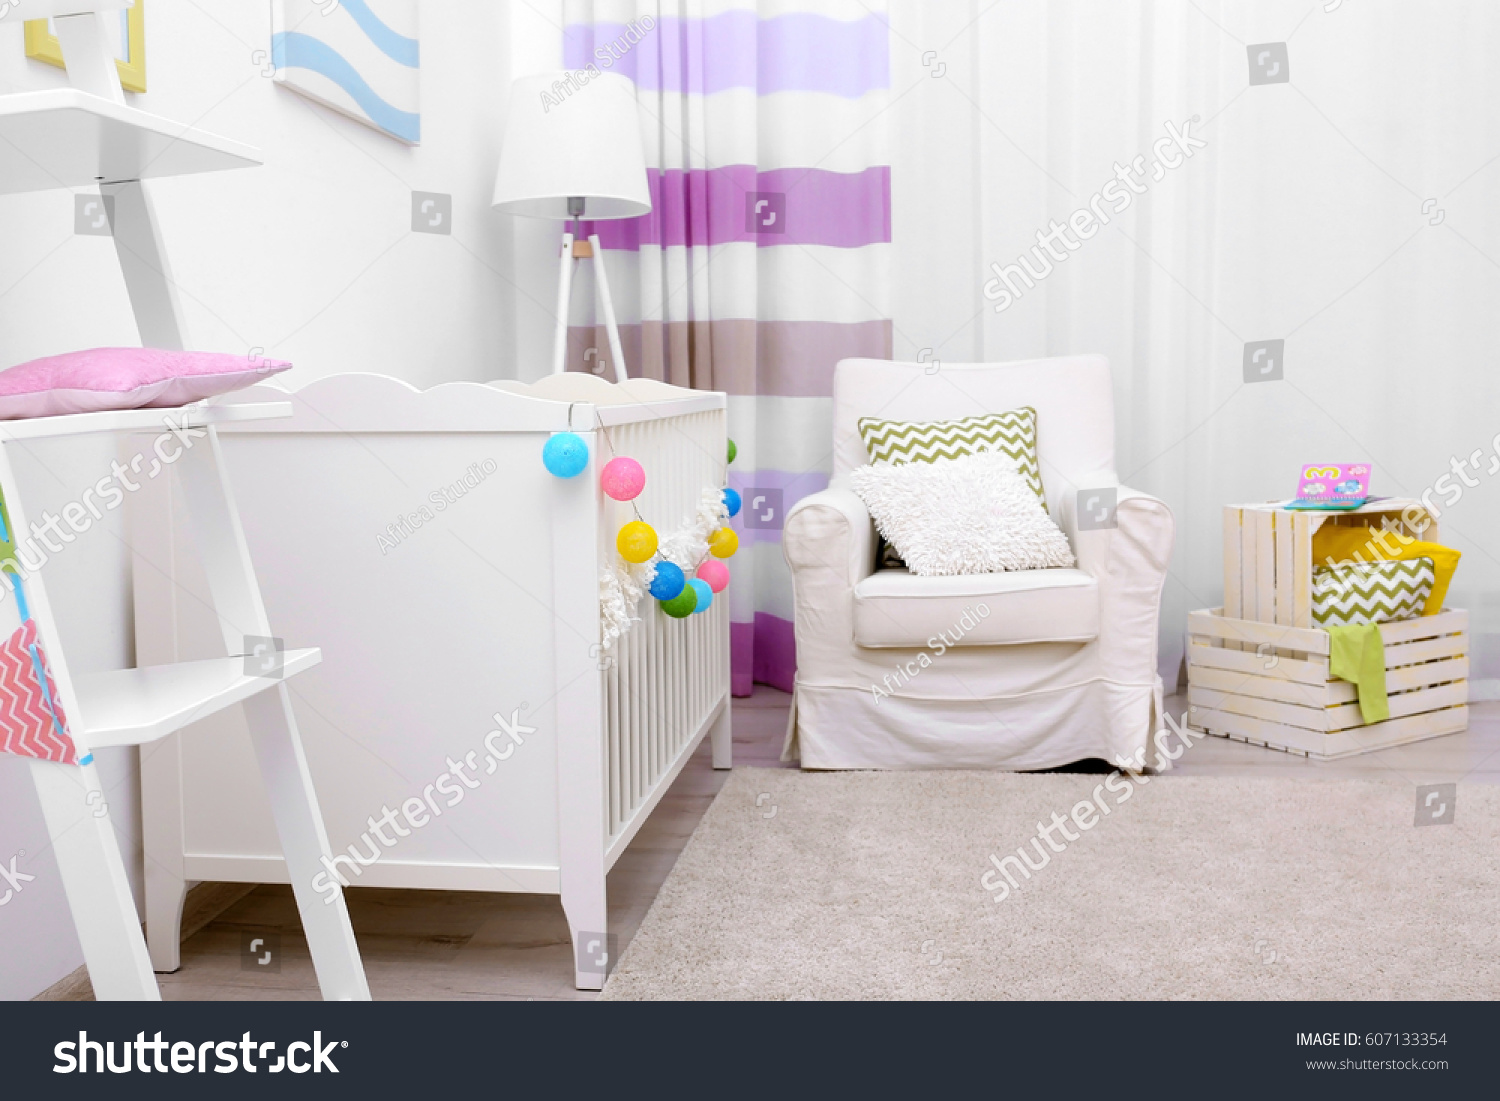 ... Interior Design Baby Room By Modern Interior Design Baby Room Stock  Photo 607133354 ... Part 51